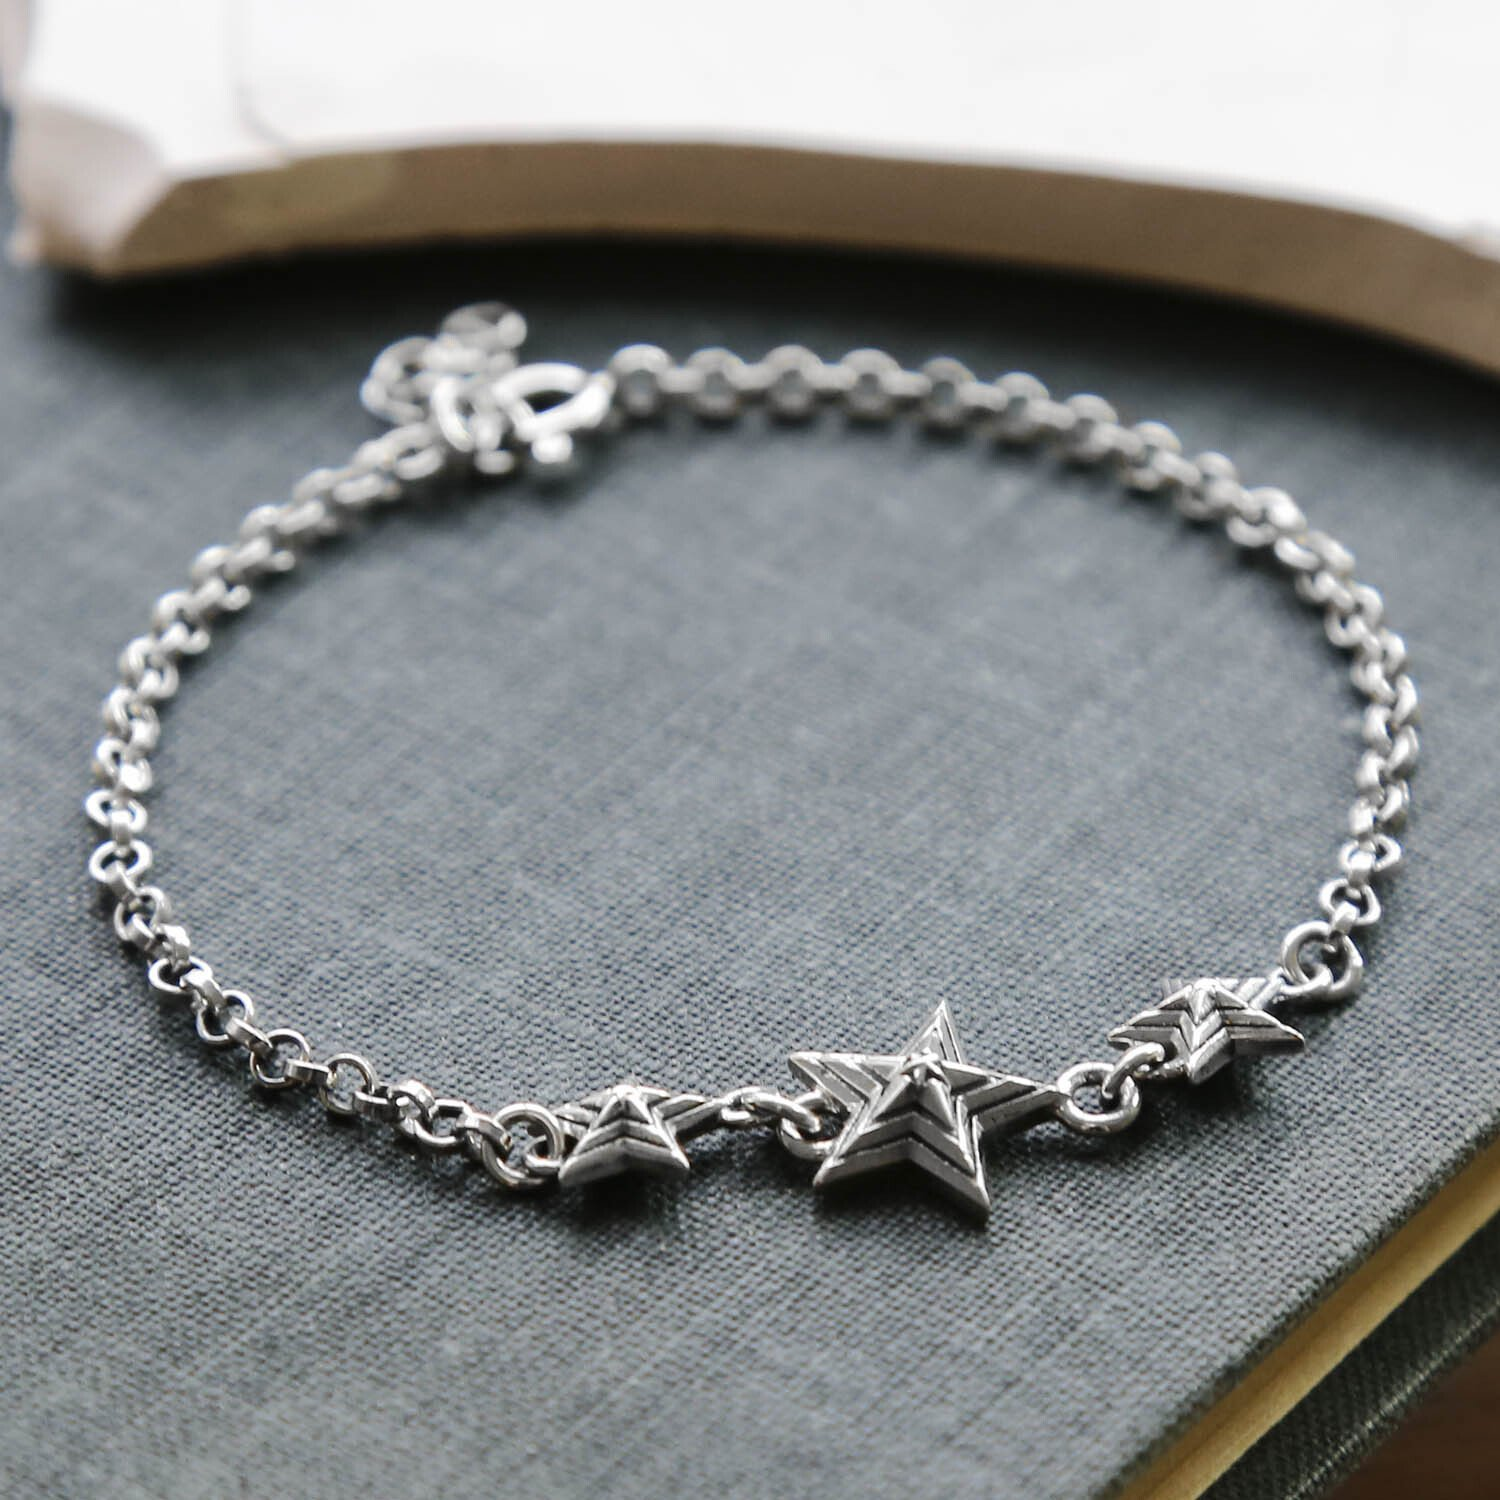 Oxidised Silver Chain Bracelet with 3 Silver Oxidised Stars on a blue textured Book Cover